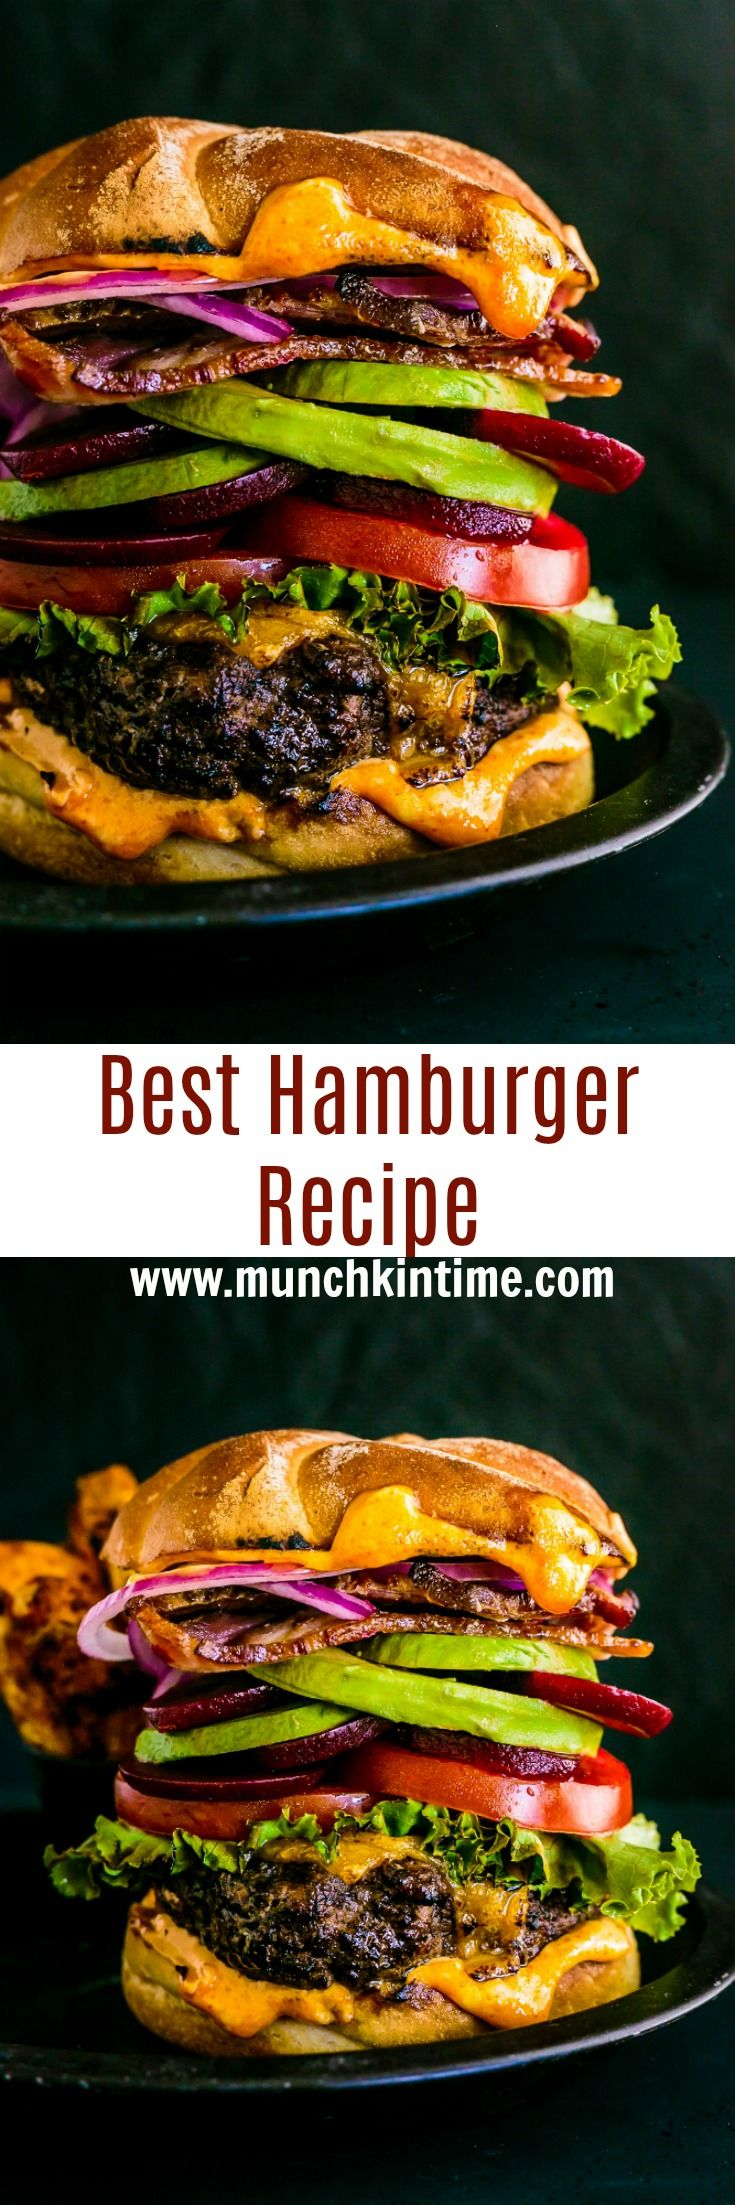 Best Hamburger Recipe – homemade patties filled with gooey cheddar cheese and grilled on a high heat, followed by more cheese on top. It is so GOOD!!! Just imagine biting into this moist and cheesy gooey goodness.  It is like a mouth orgasm!  I mean, who can say NO to this sexy burger?!? www.munchkintime.com